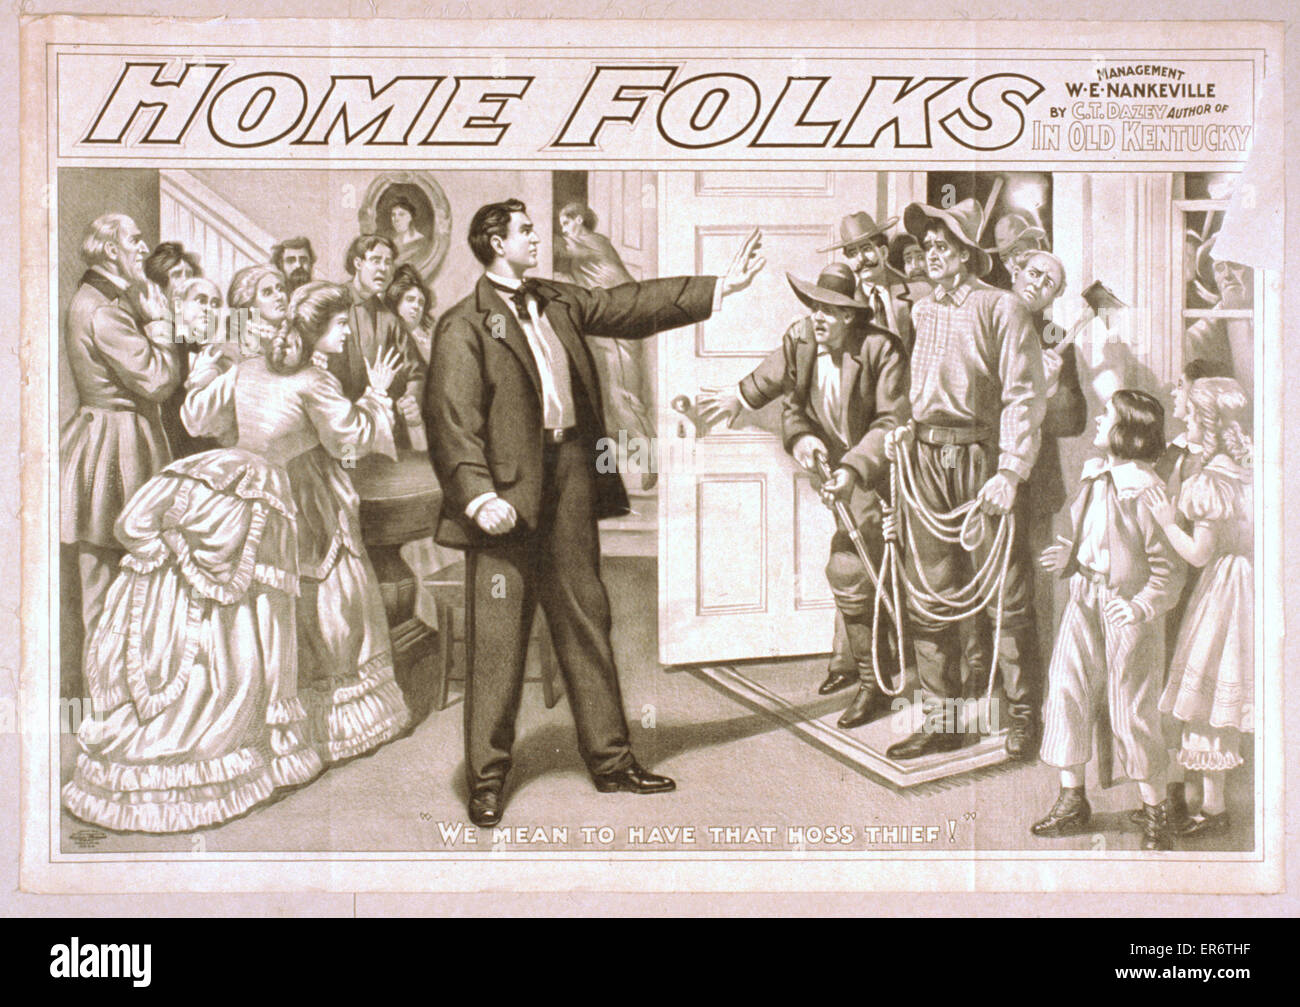 Home folks by CT Dazey, author of In old Kentucky. Date c1906. - Stock Image